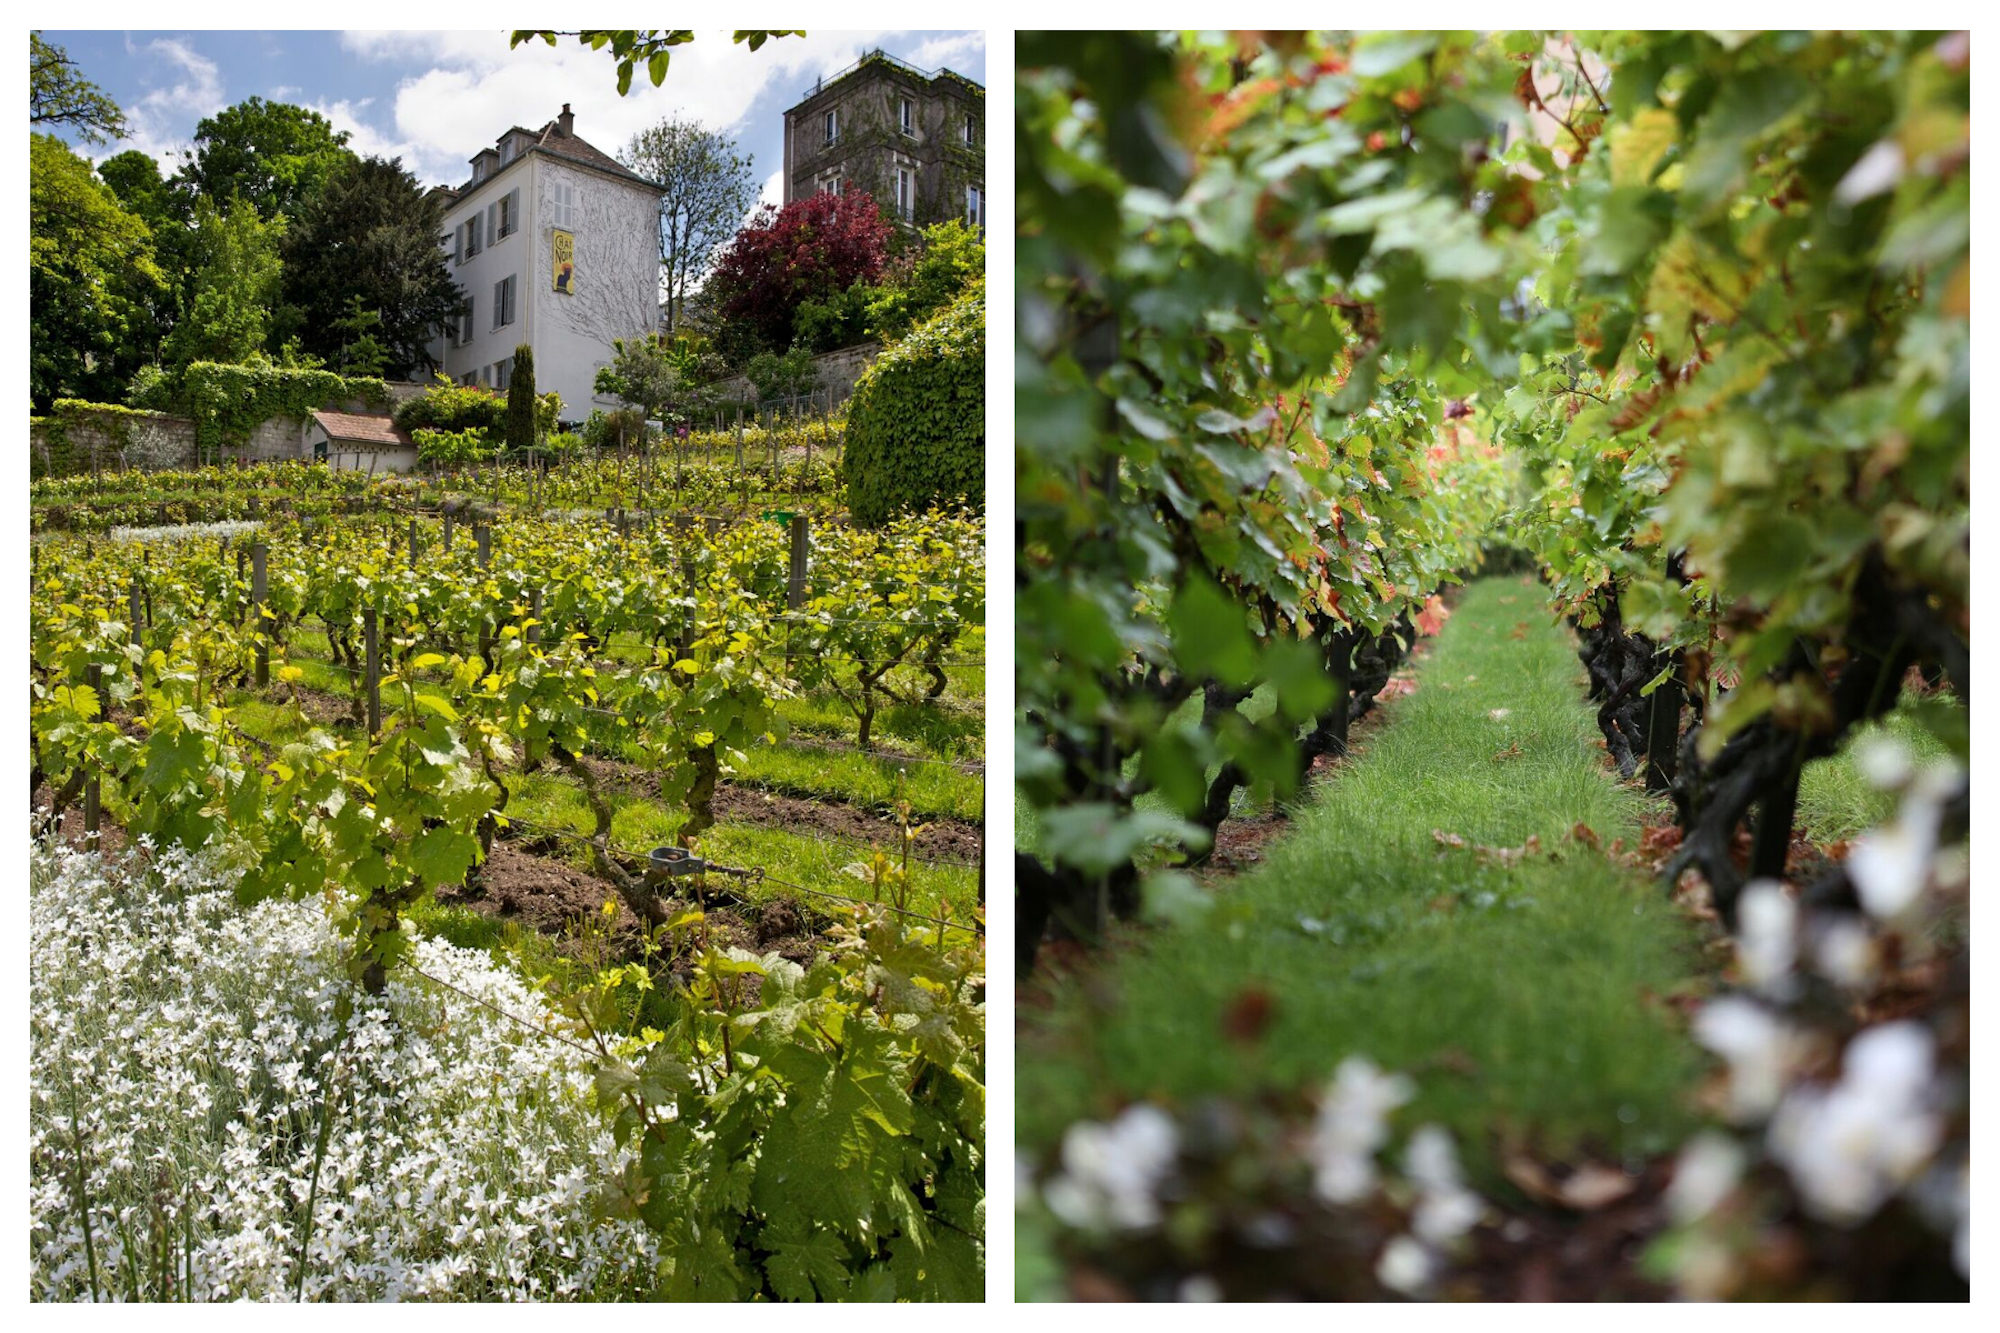 One event not to miss in Paris in October is the Fête des Vendanges in Montmartre's hidden vineyard.